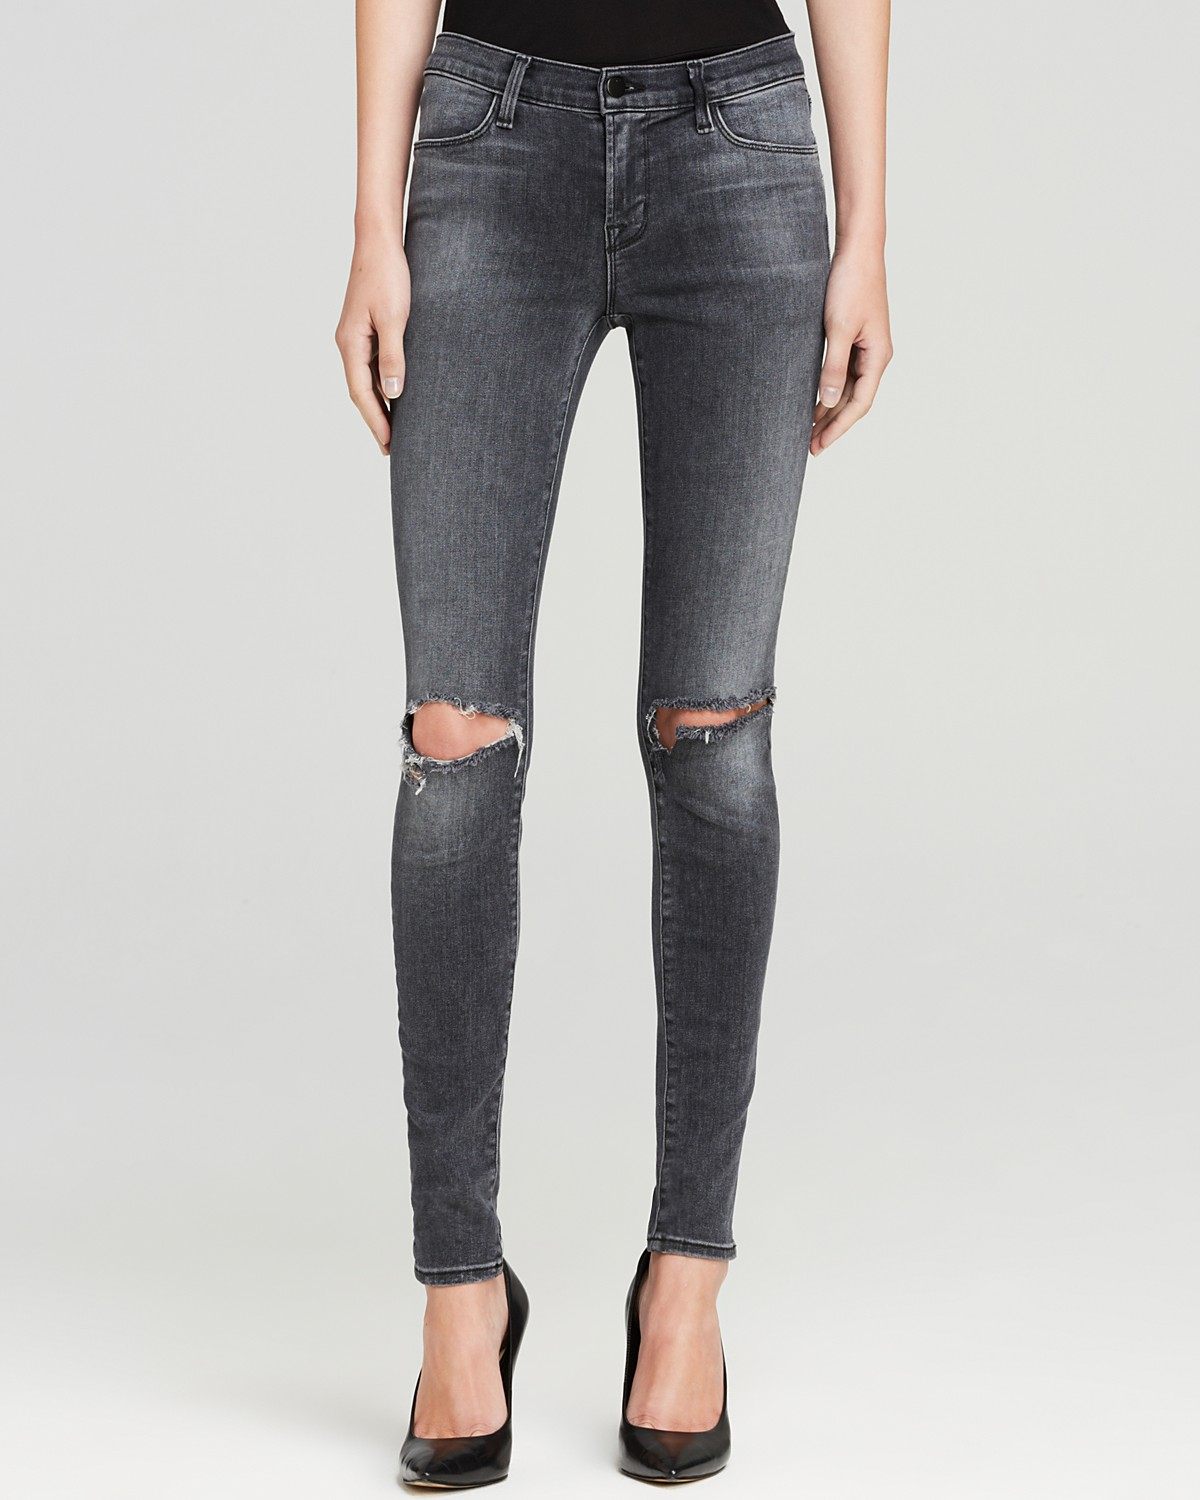 J Brand Jeans - 620 Close Cut Mid Rise Super Skinny in Nemesis | Bloomingdale's